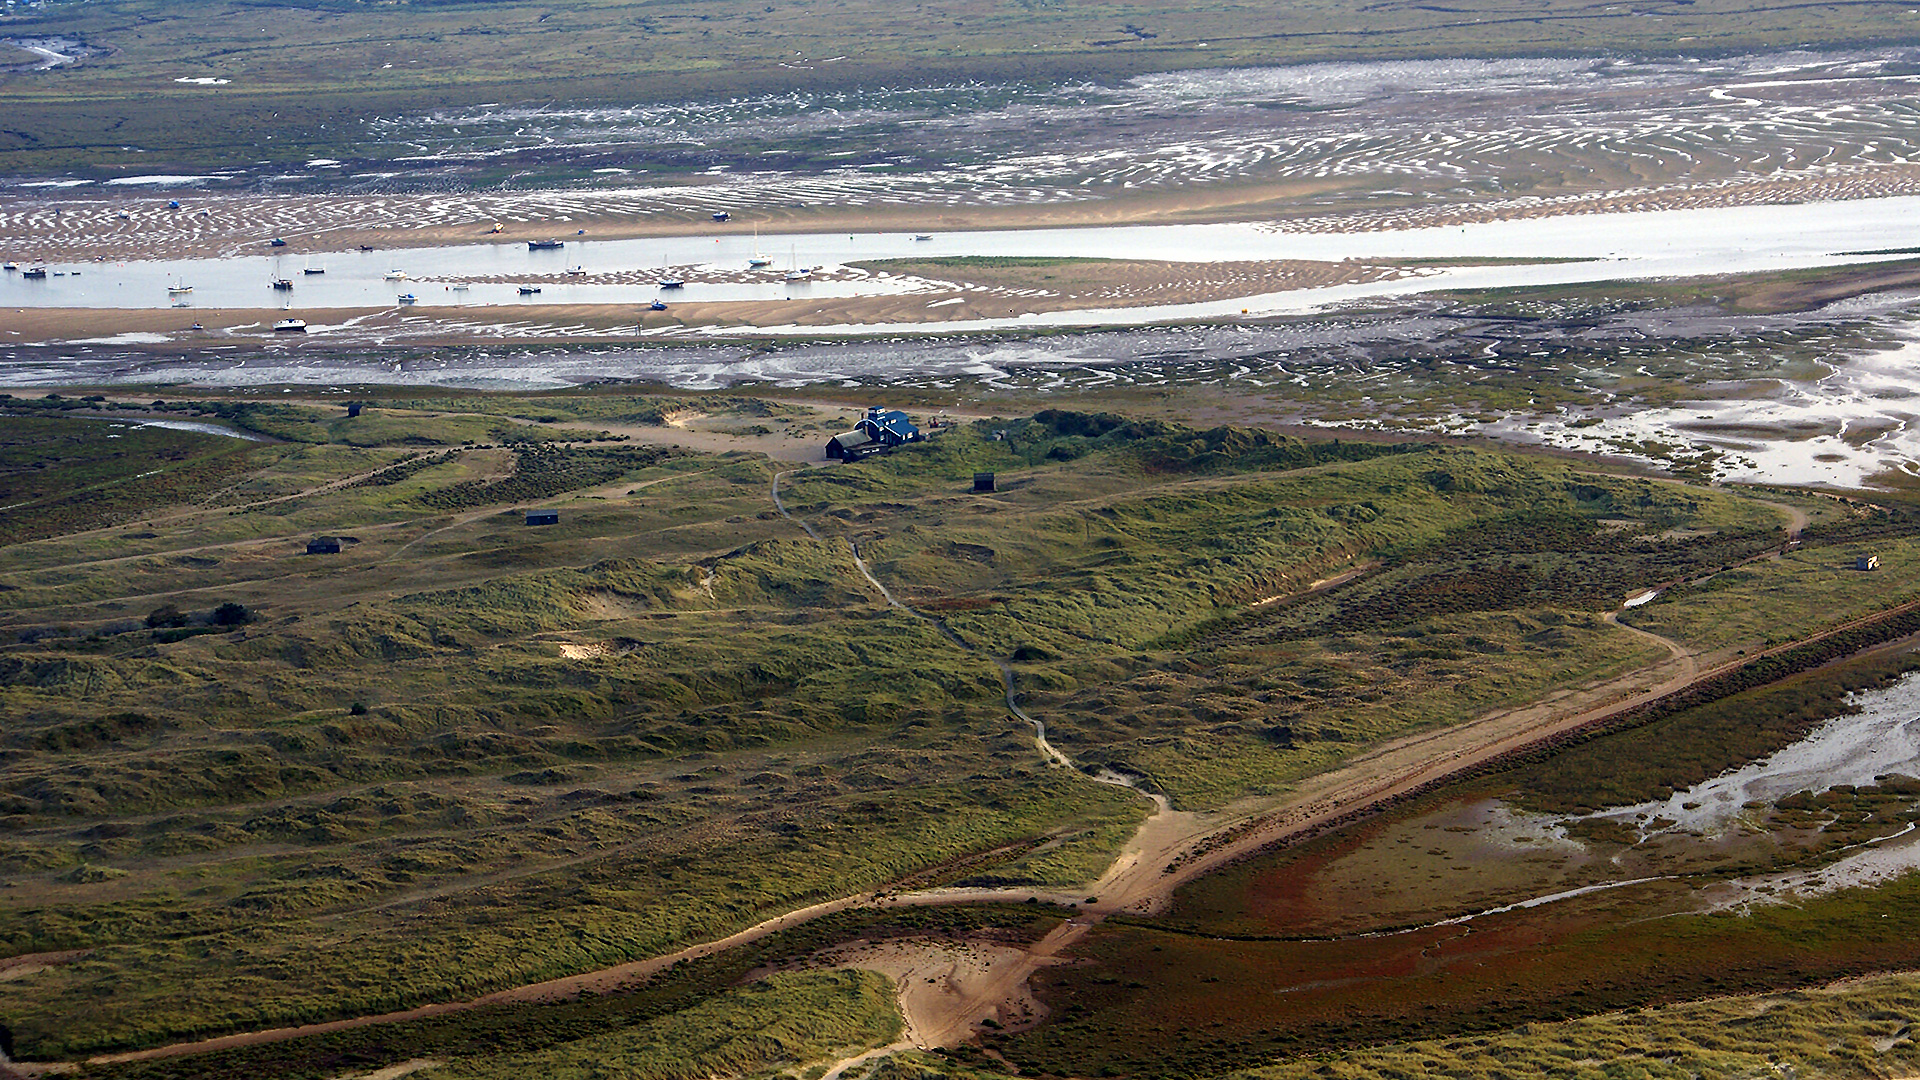 Aerial photo of Blakeney pit and the Lifeboat station